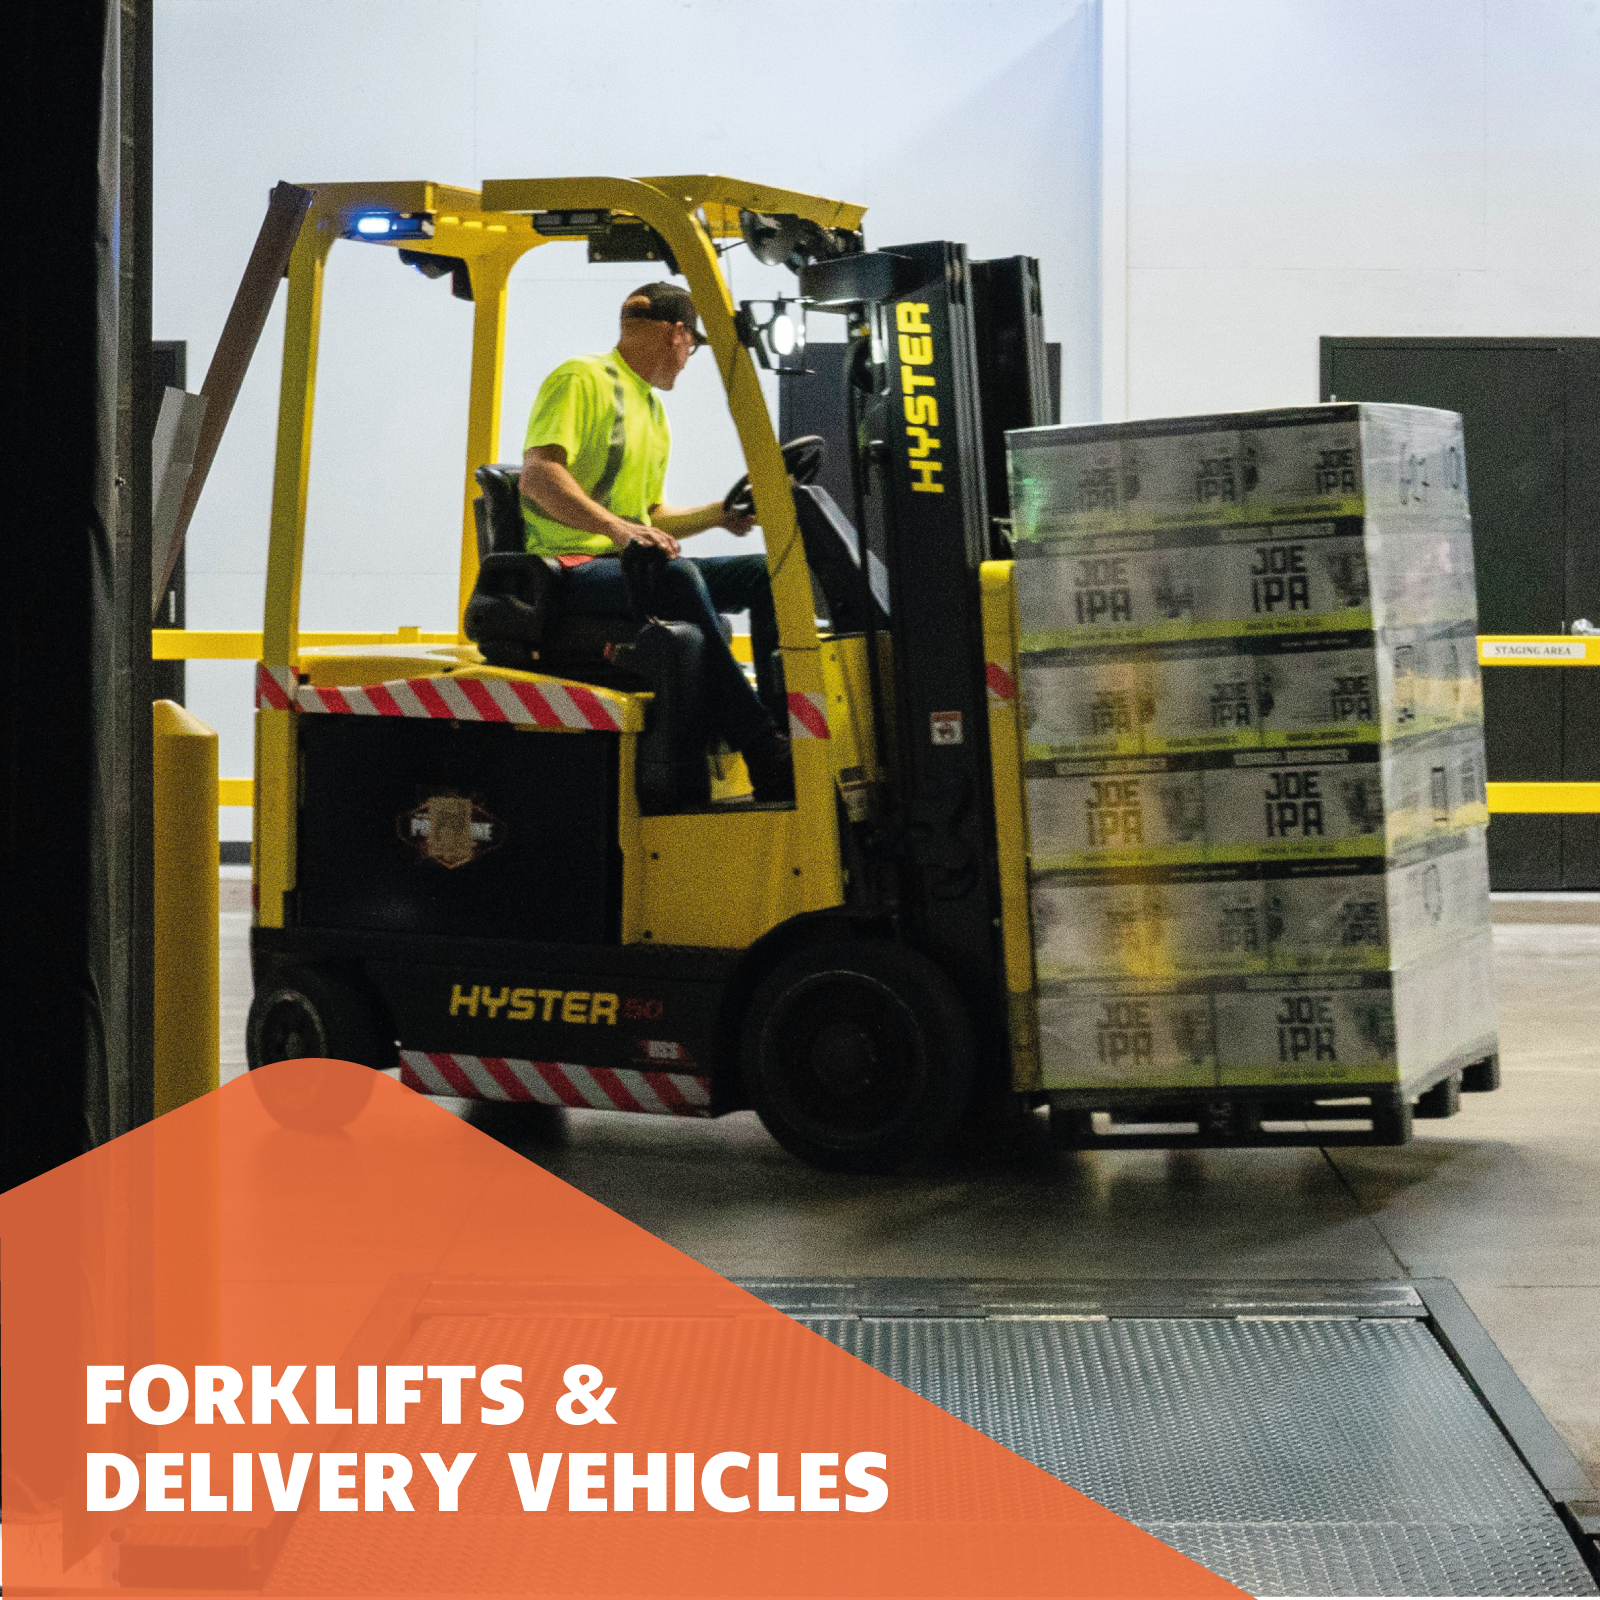 Forklifts & Delivery Vehicles